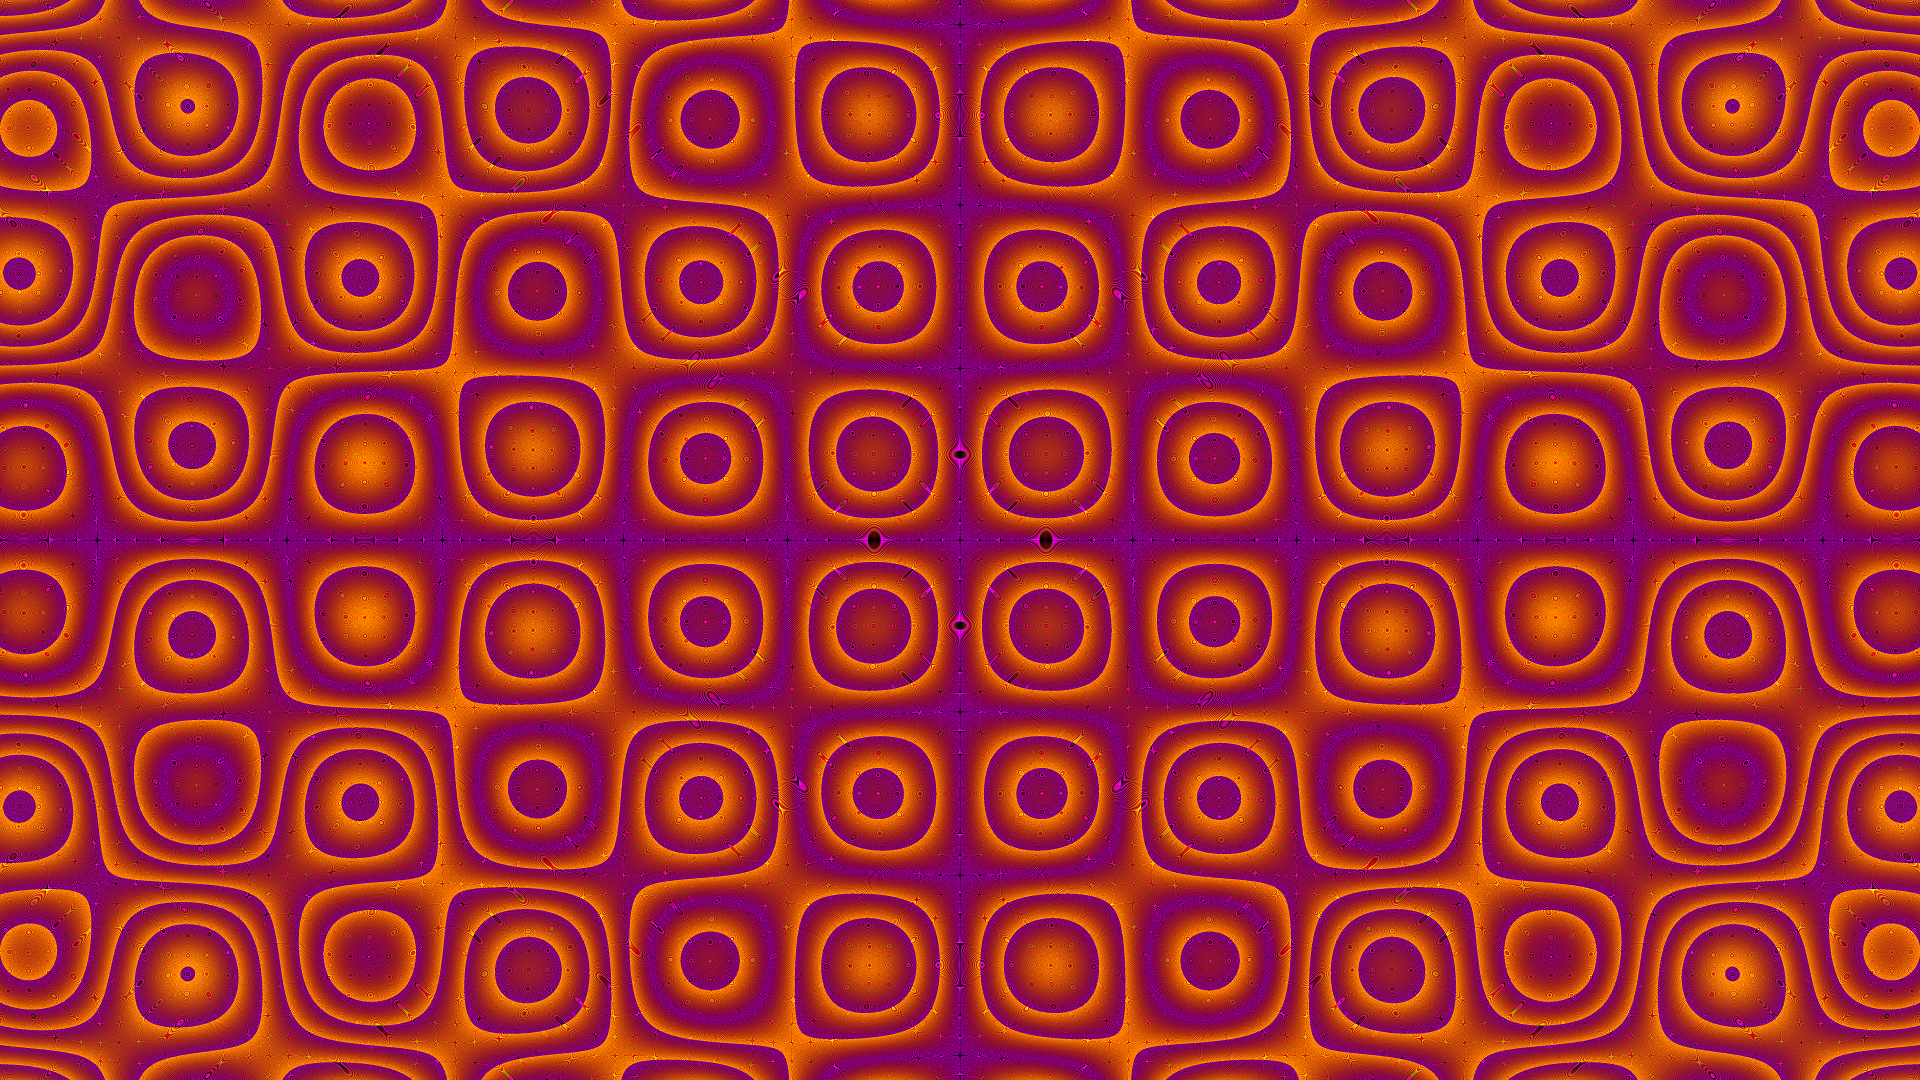 The 70s, Wallpapers and Psychedelic on Pinterest